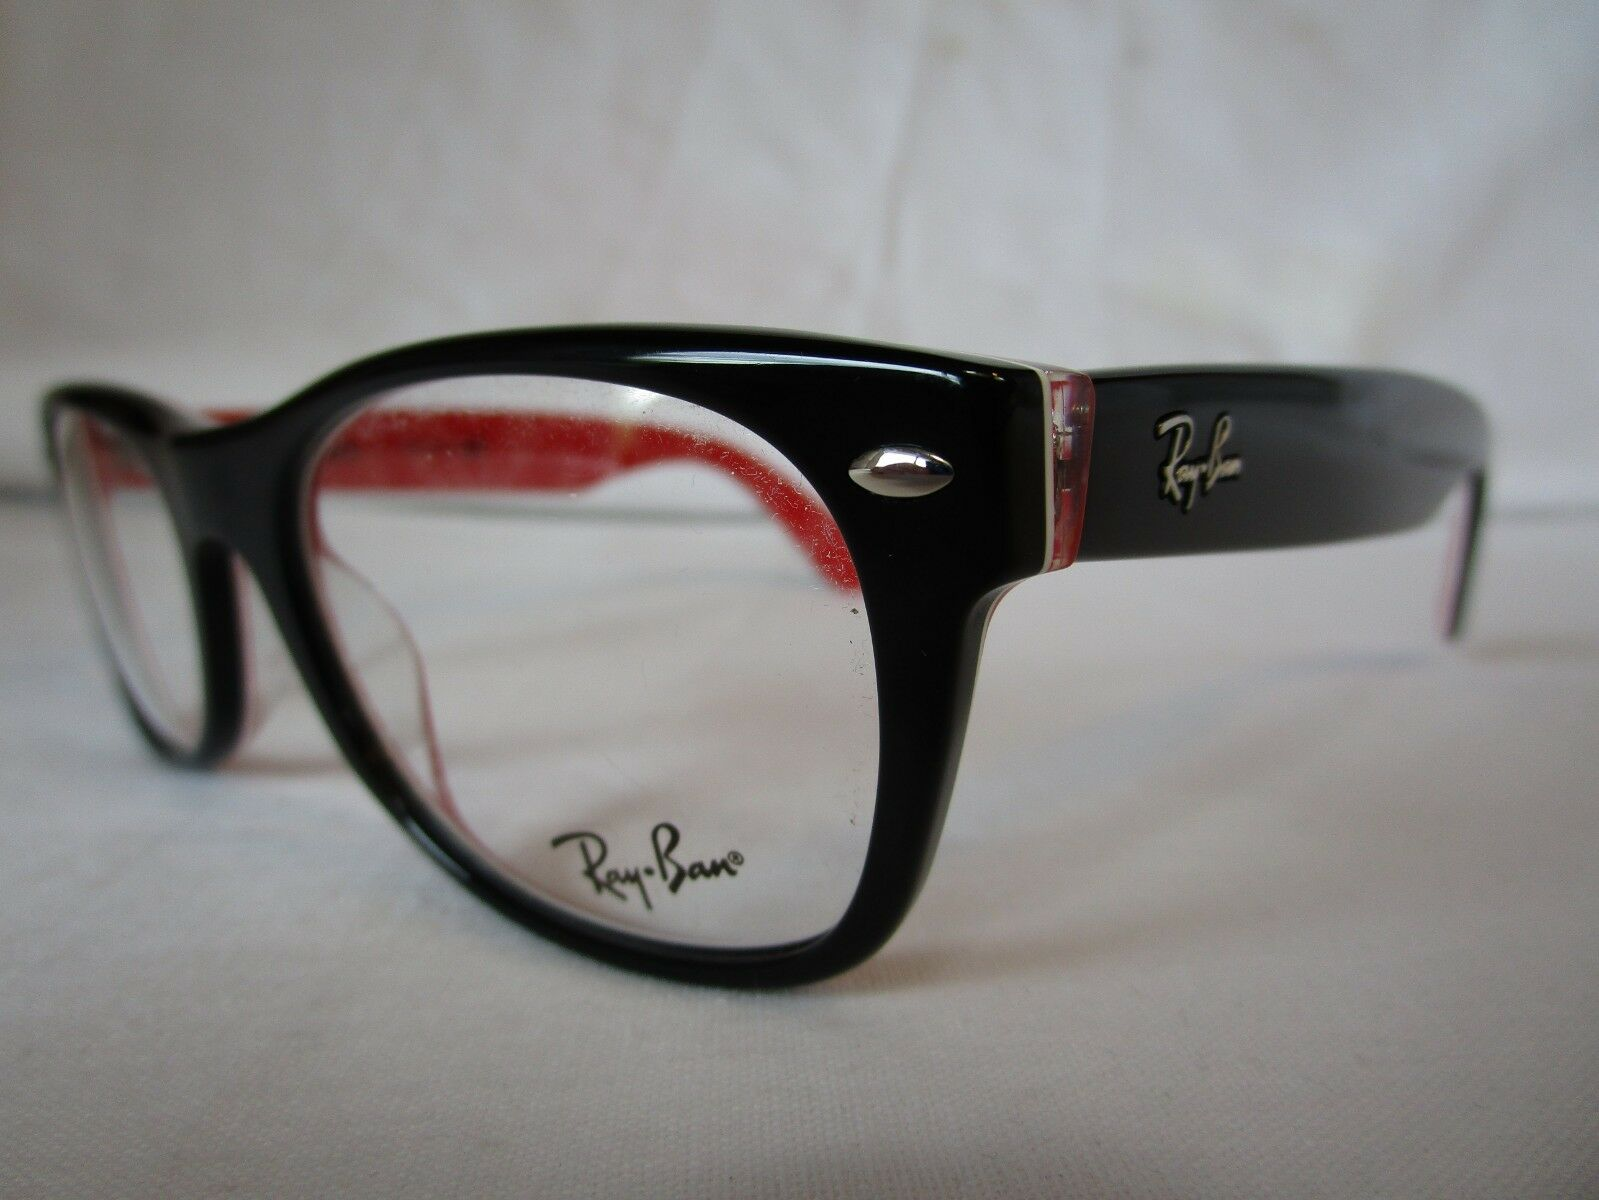 a6616cea0b UPC 805289418535 product image for Ray Ban Eyeglasses Rx5184 Wayfarer 2479  Black Red Logo Print Plastic ...